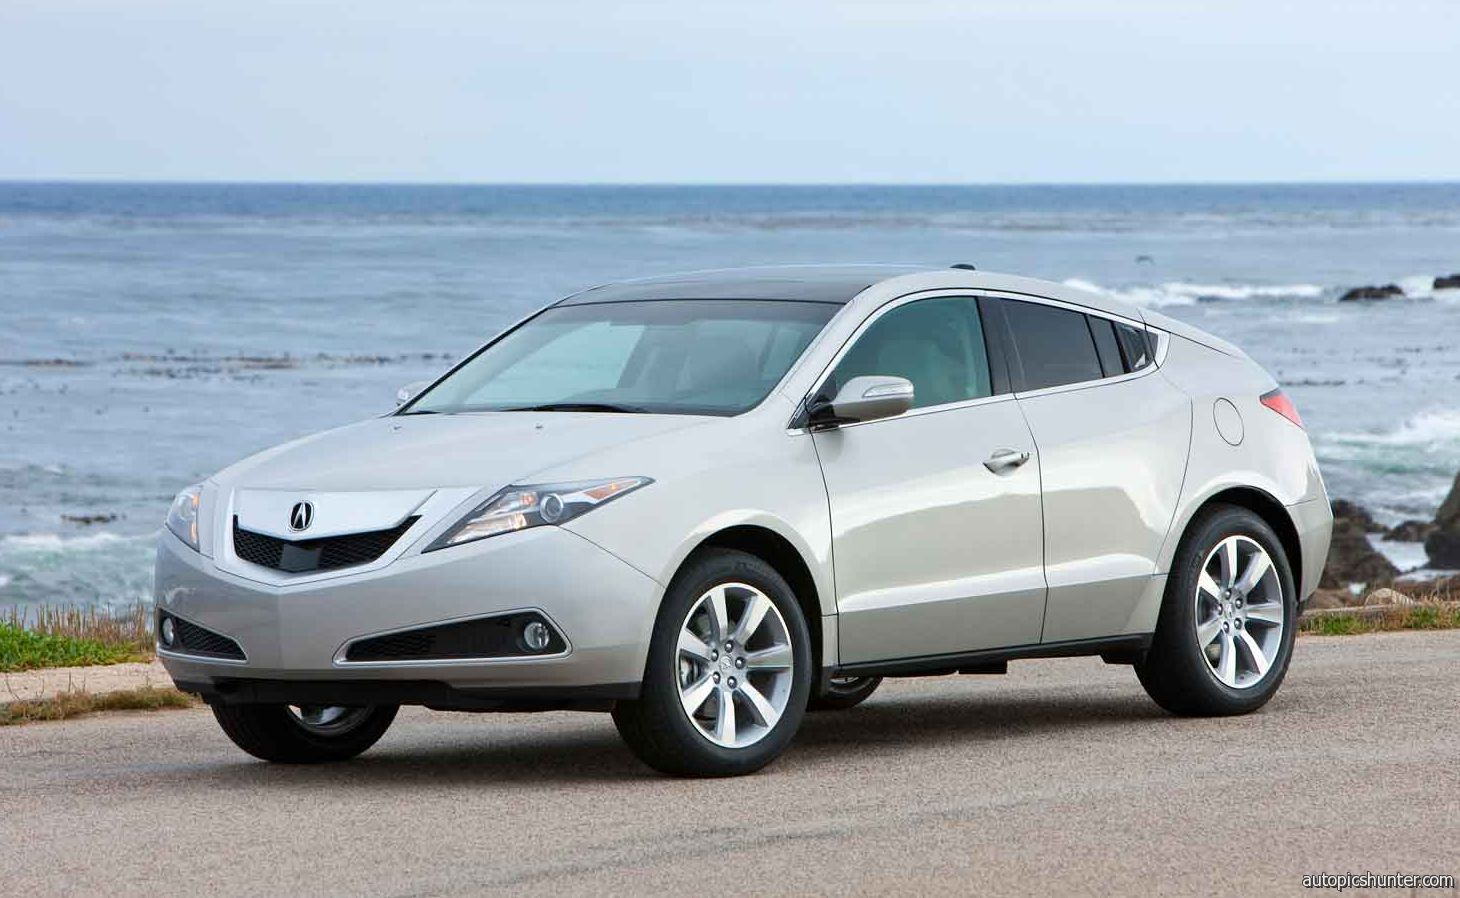 acura zdx for sale html with 2012 Acura Zdx Review Specs on Online Auto Repair Manual 2009 Hummer H3 Parental Controls moreover Acura integra furthermore 2012 Acura Nsx Colors as well 2010 Acura Zdx Full Specifications 10649 likewise Filed Under Auto News Subaru Sedans Subaru Sedans Midsize Tweet.